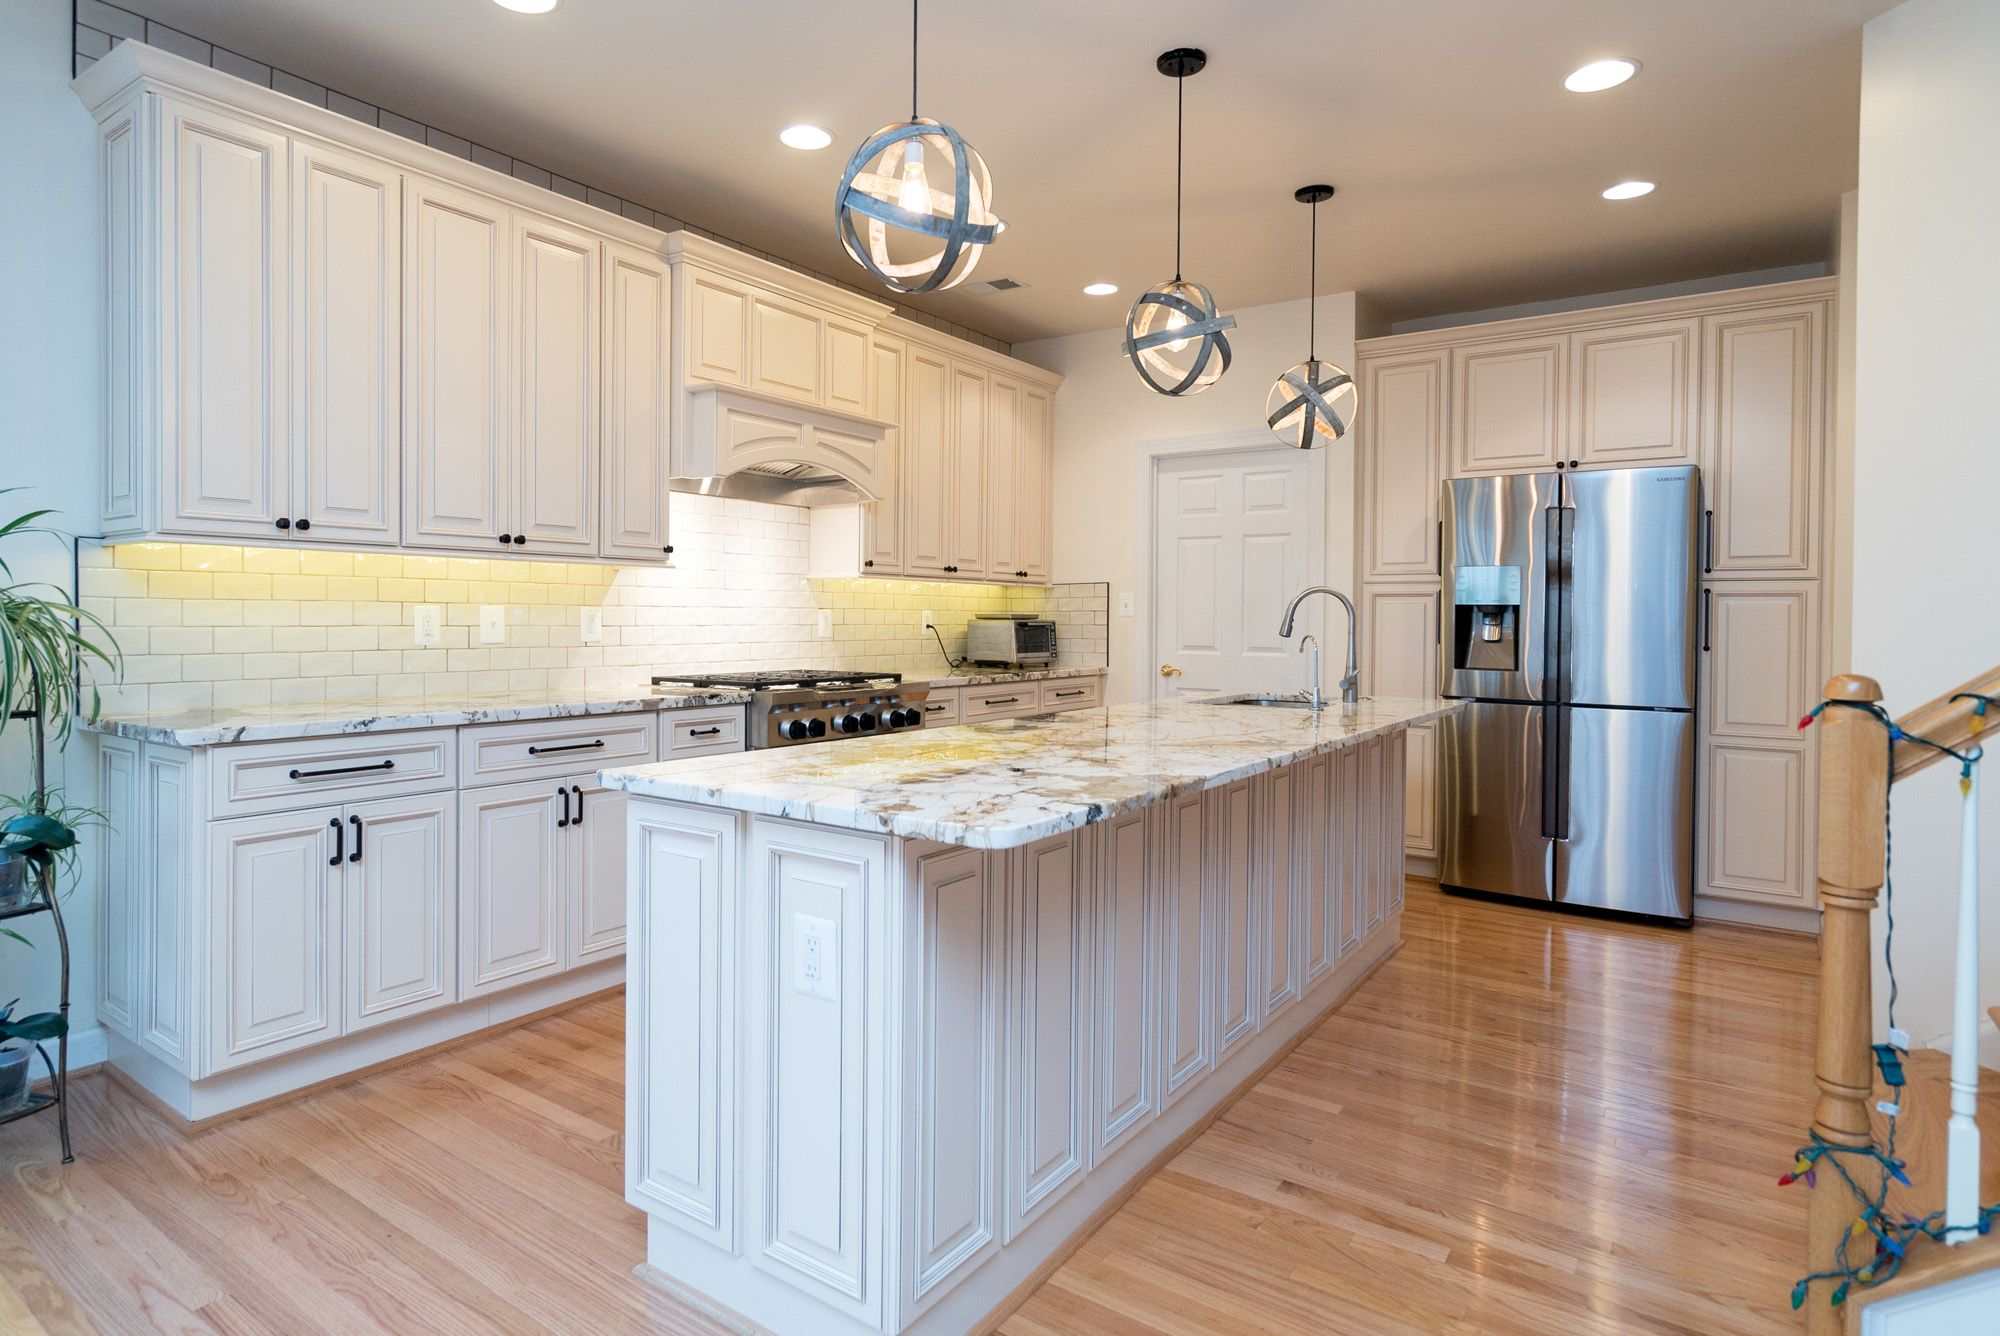 Beau USA Cabinet Store Kitchen Remodeling In Fairfax, VA